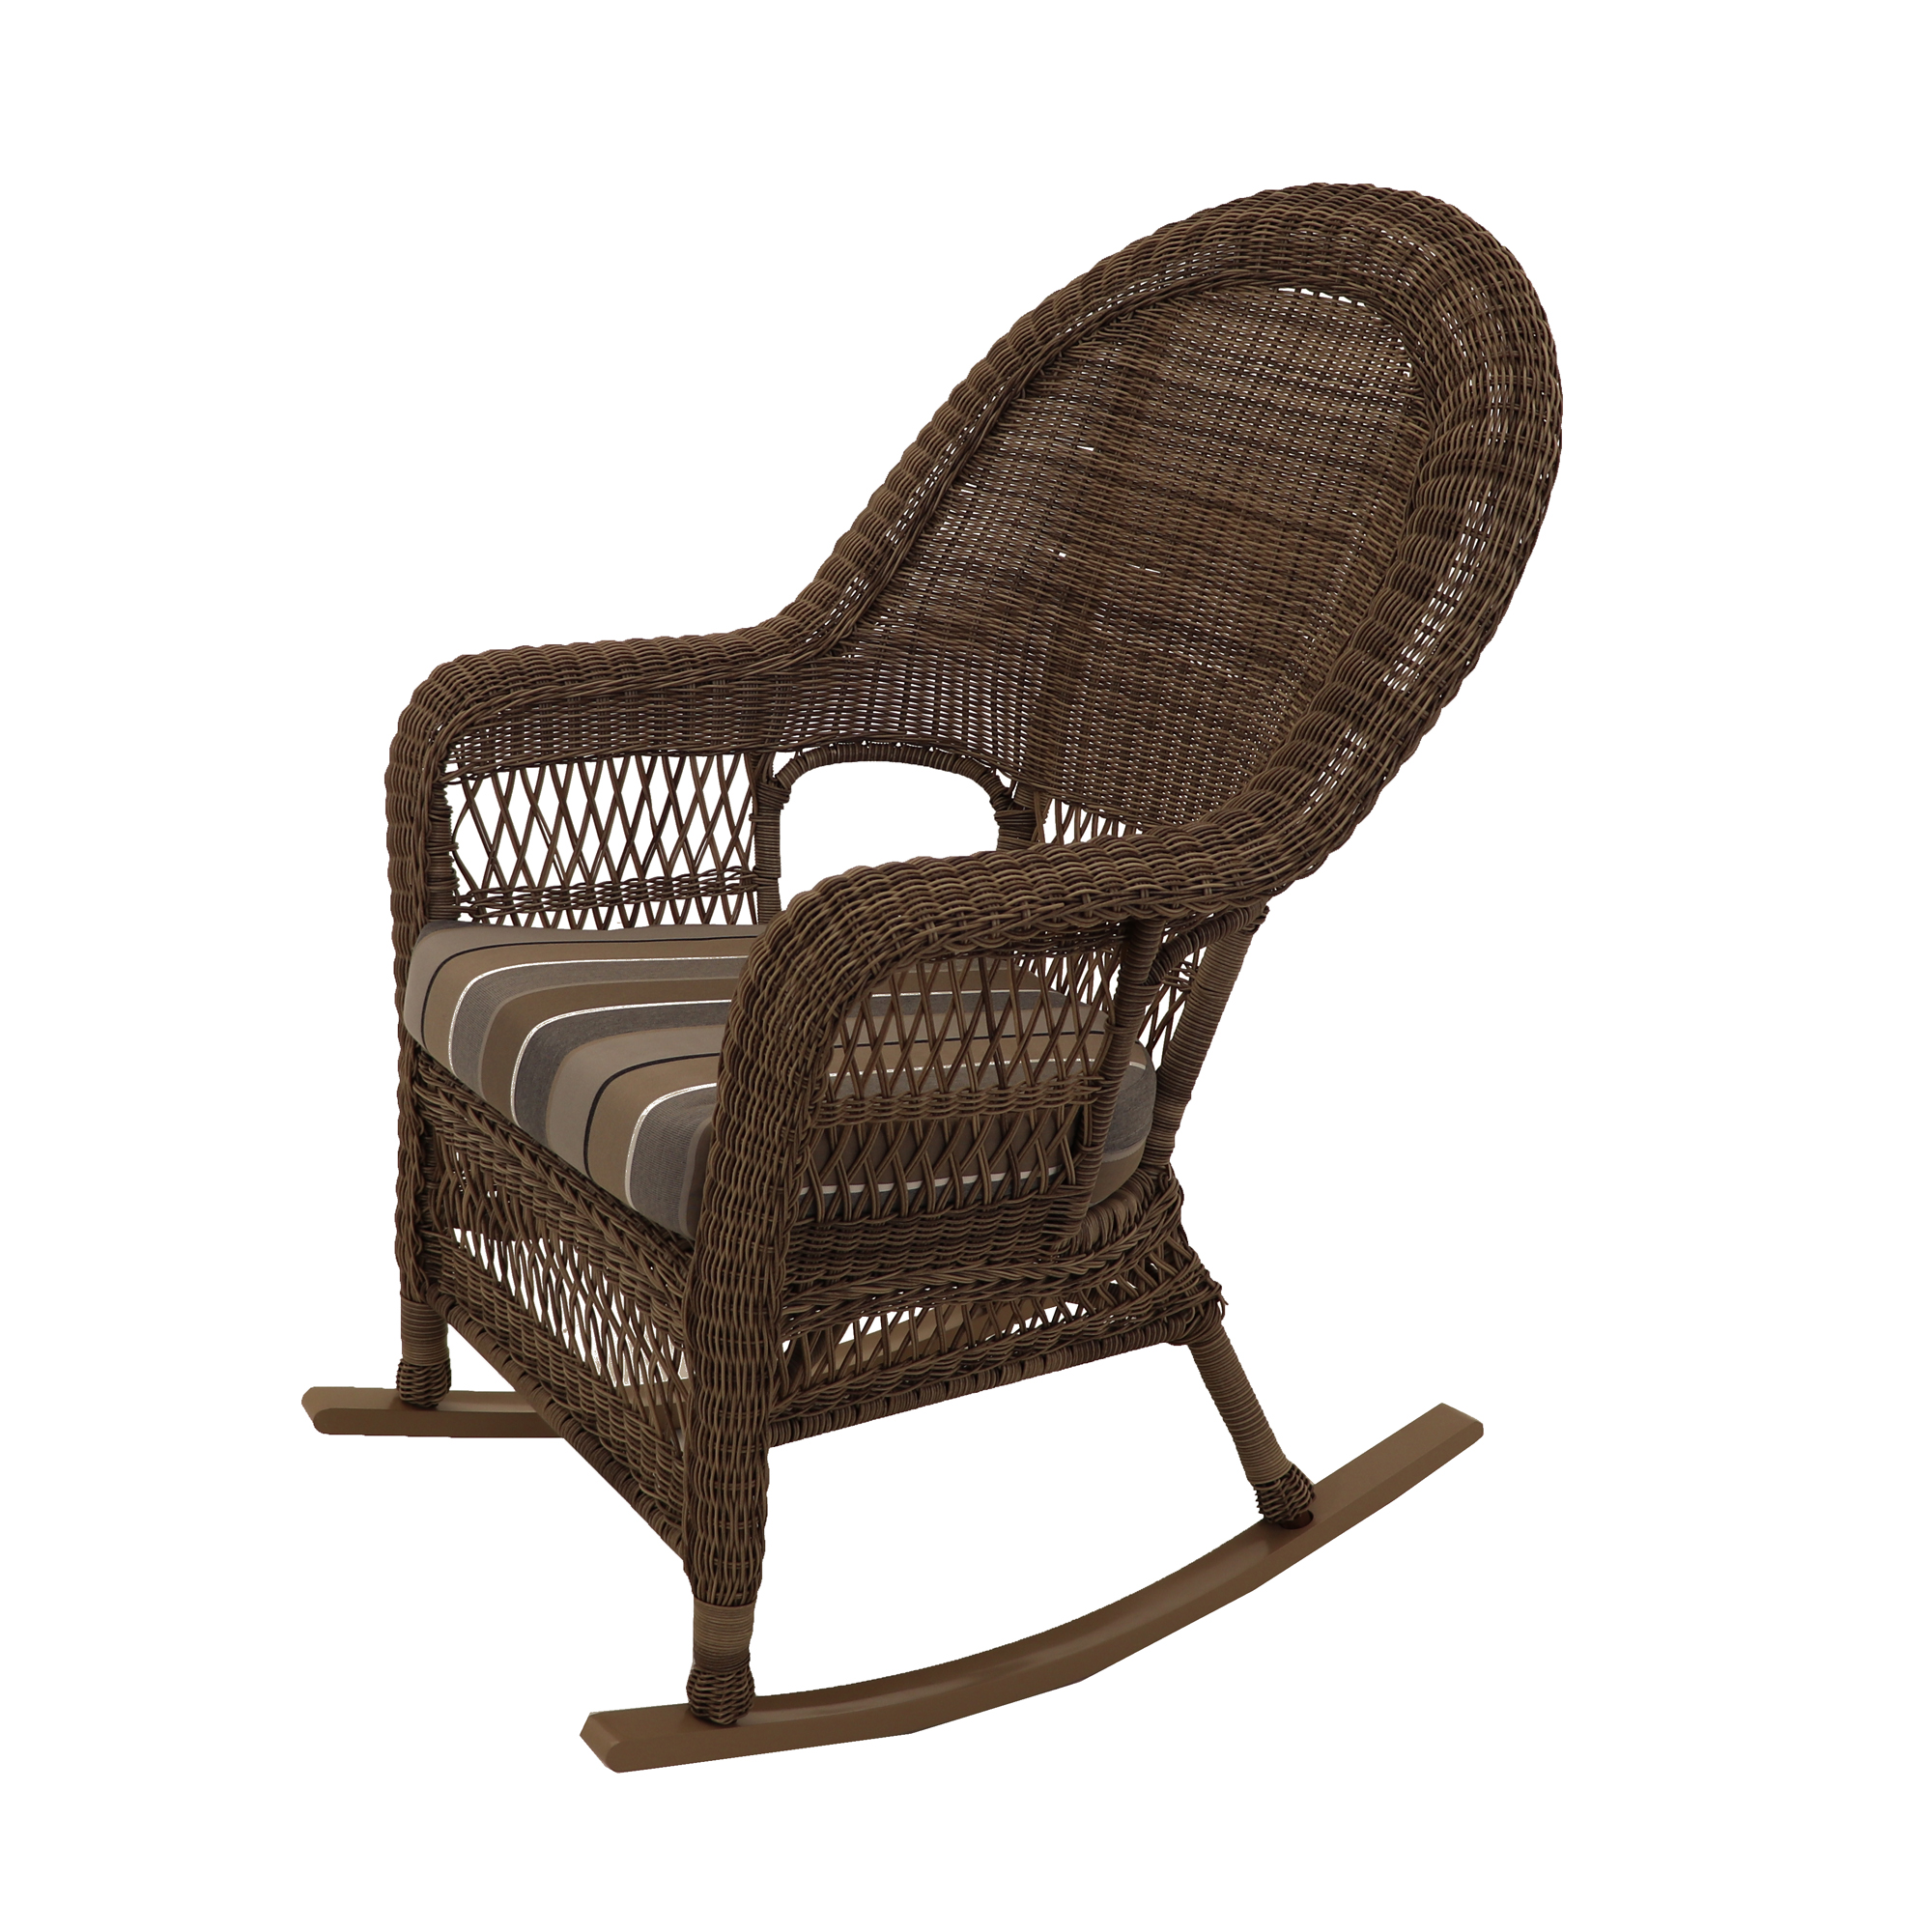 Wicker Rocking Chair Freeport Wicker Rocking Chair